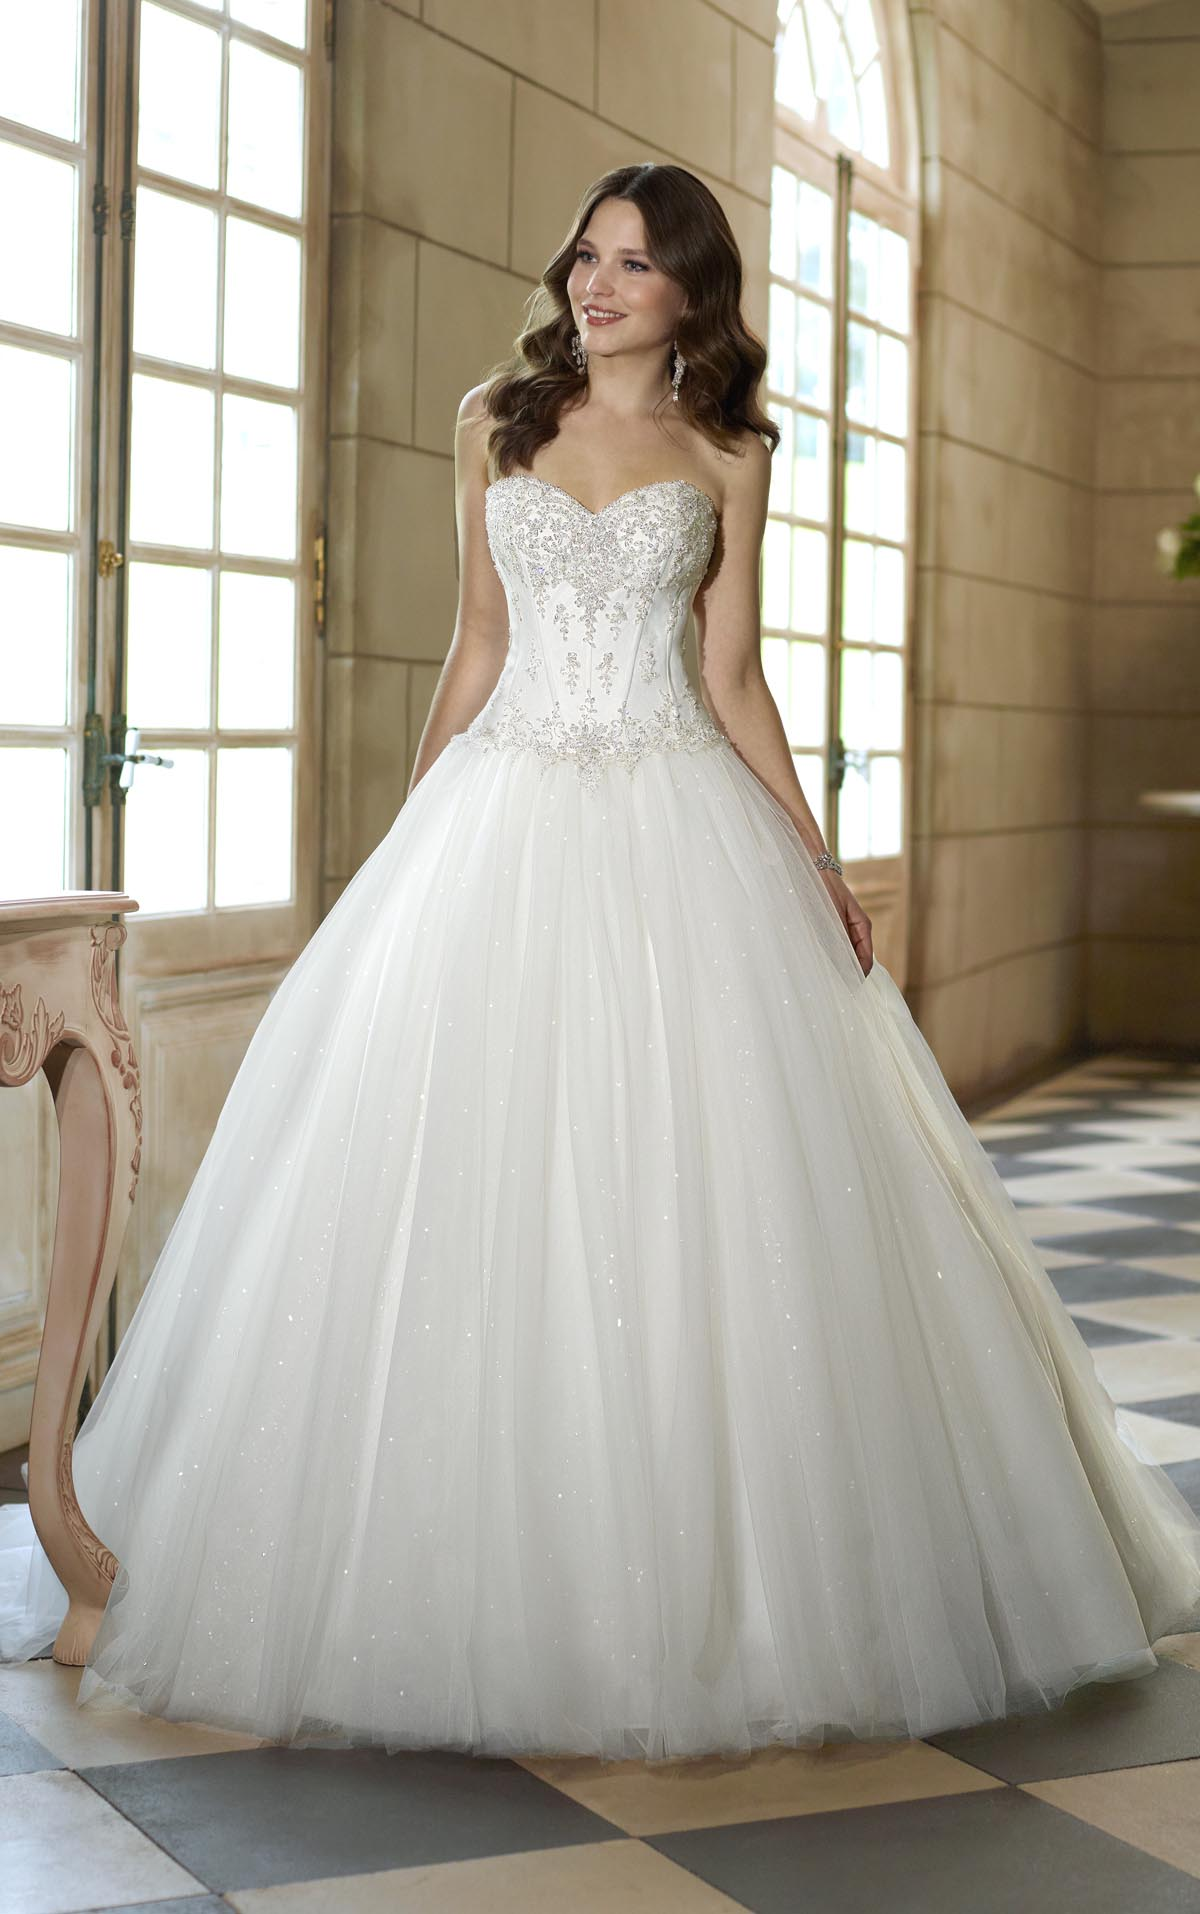 16 best ball gown wedding dresses ideas princess style wedding dress Ball gown wedding dresses